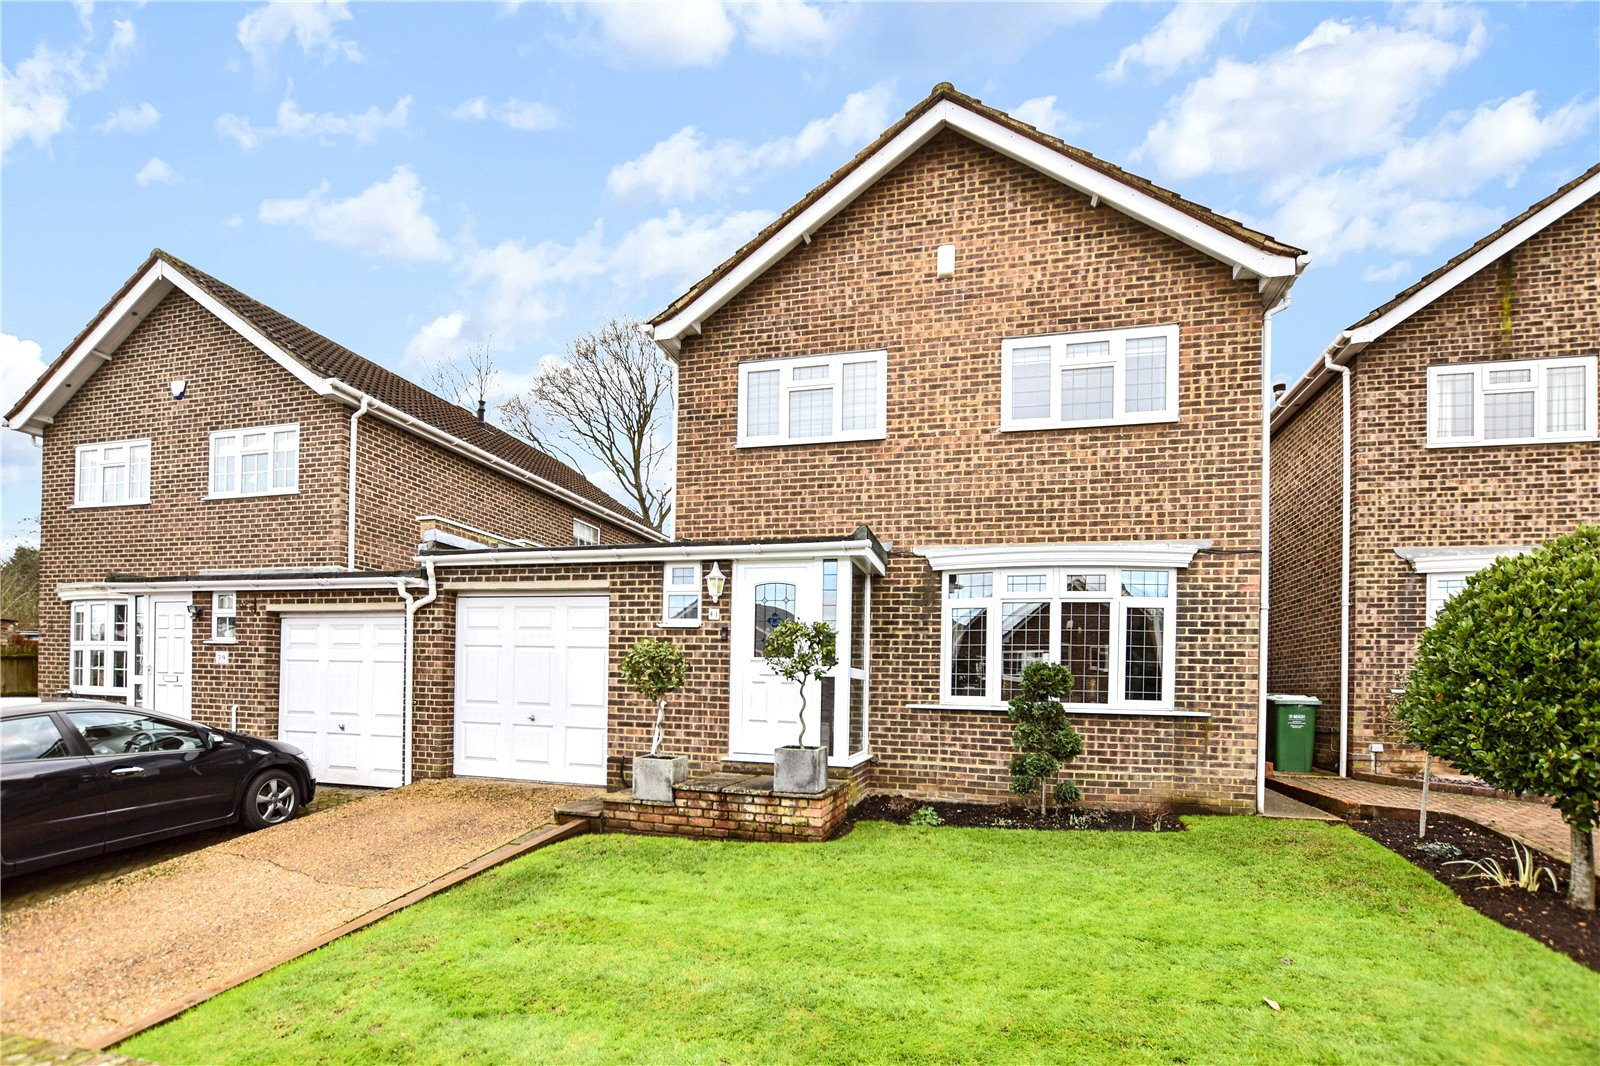 Monterey Close, Bexley, Kent, DA5